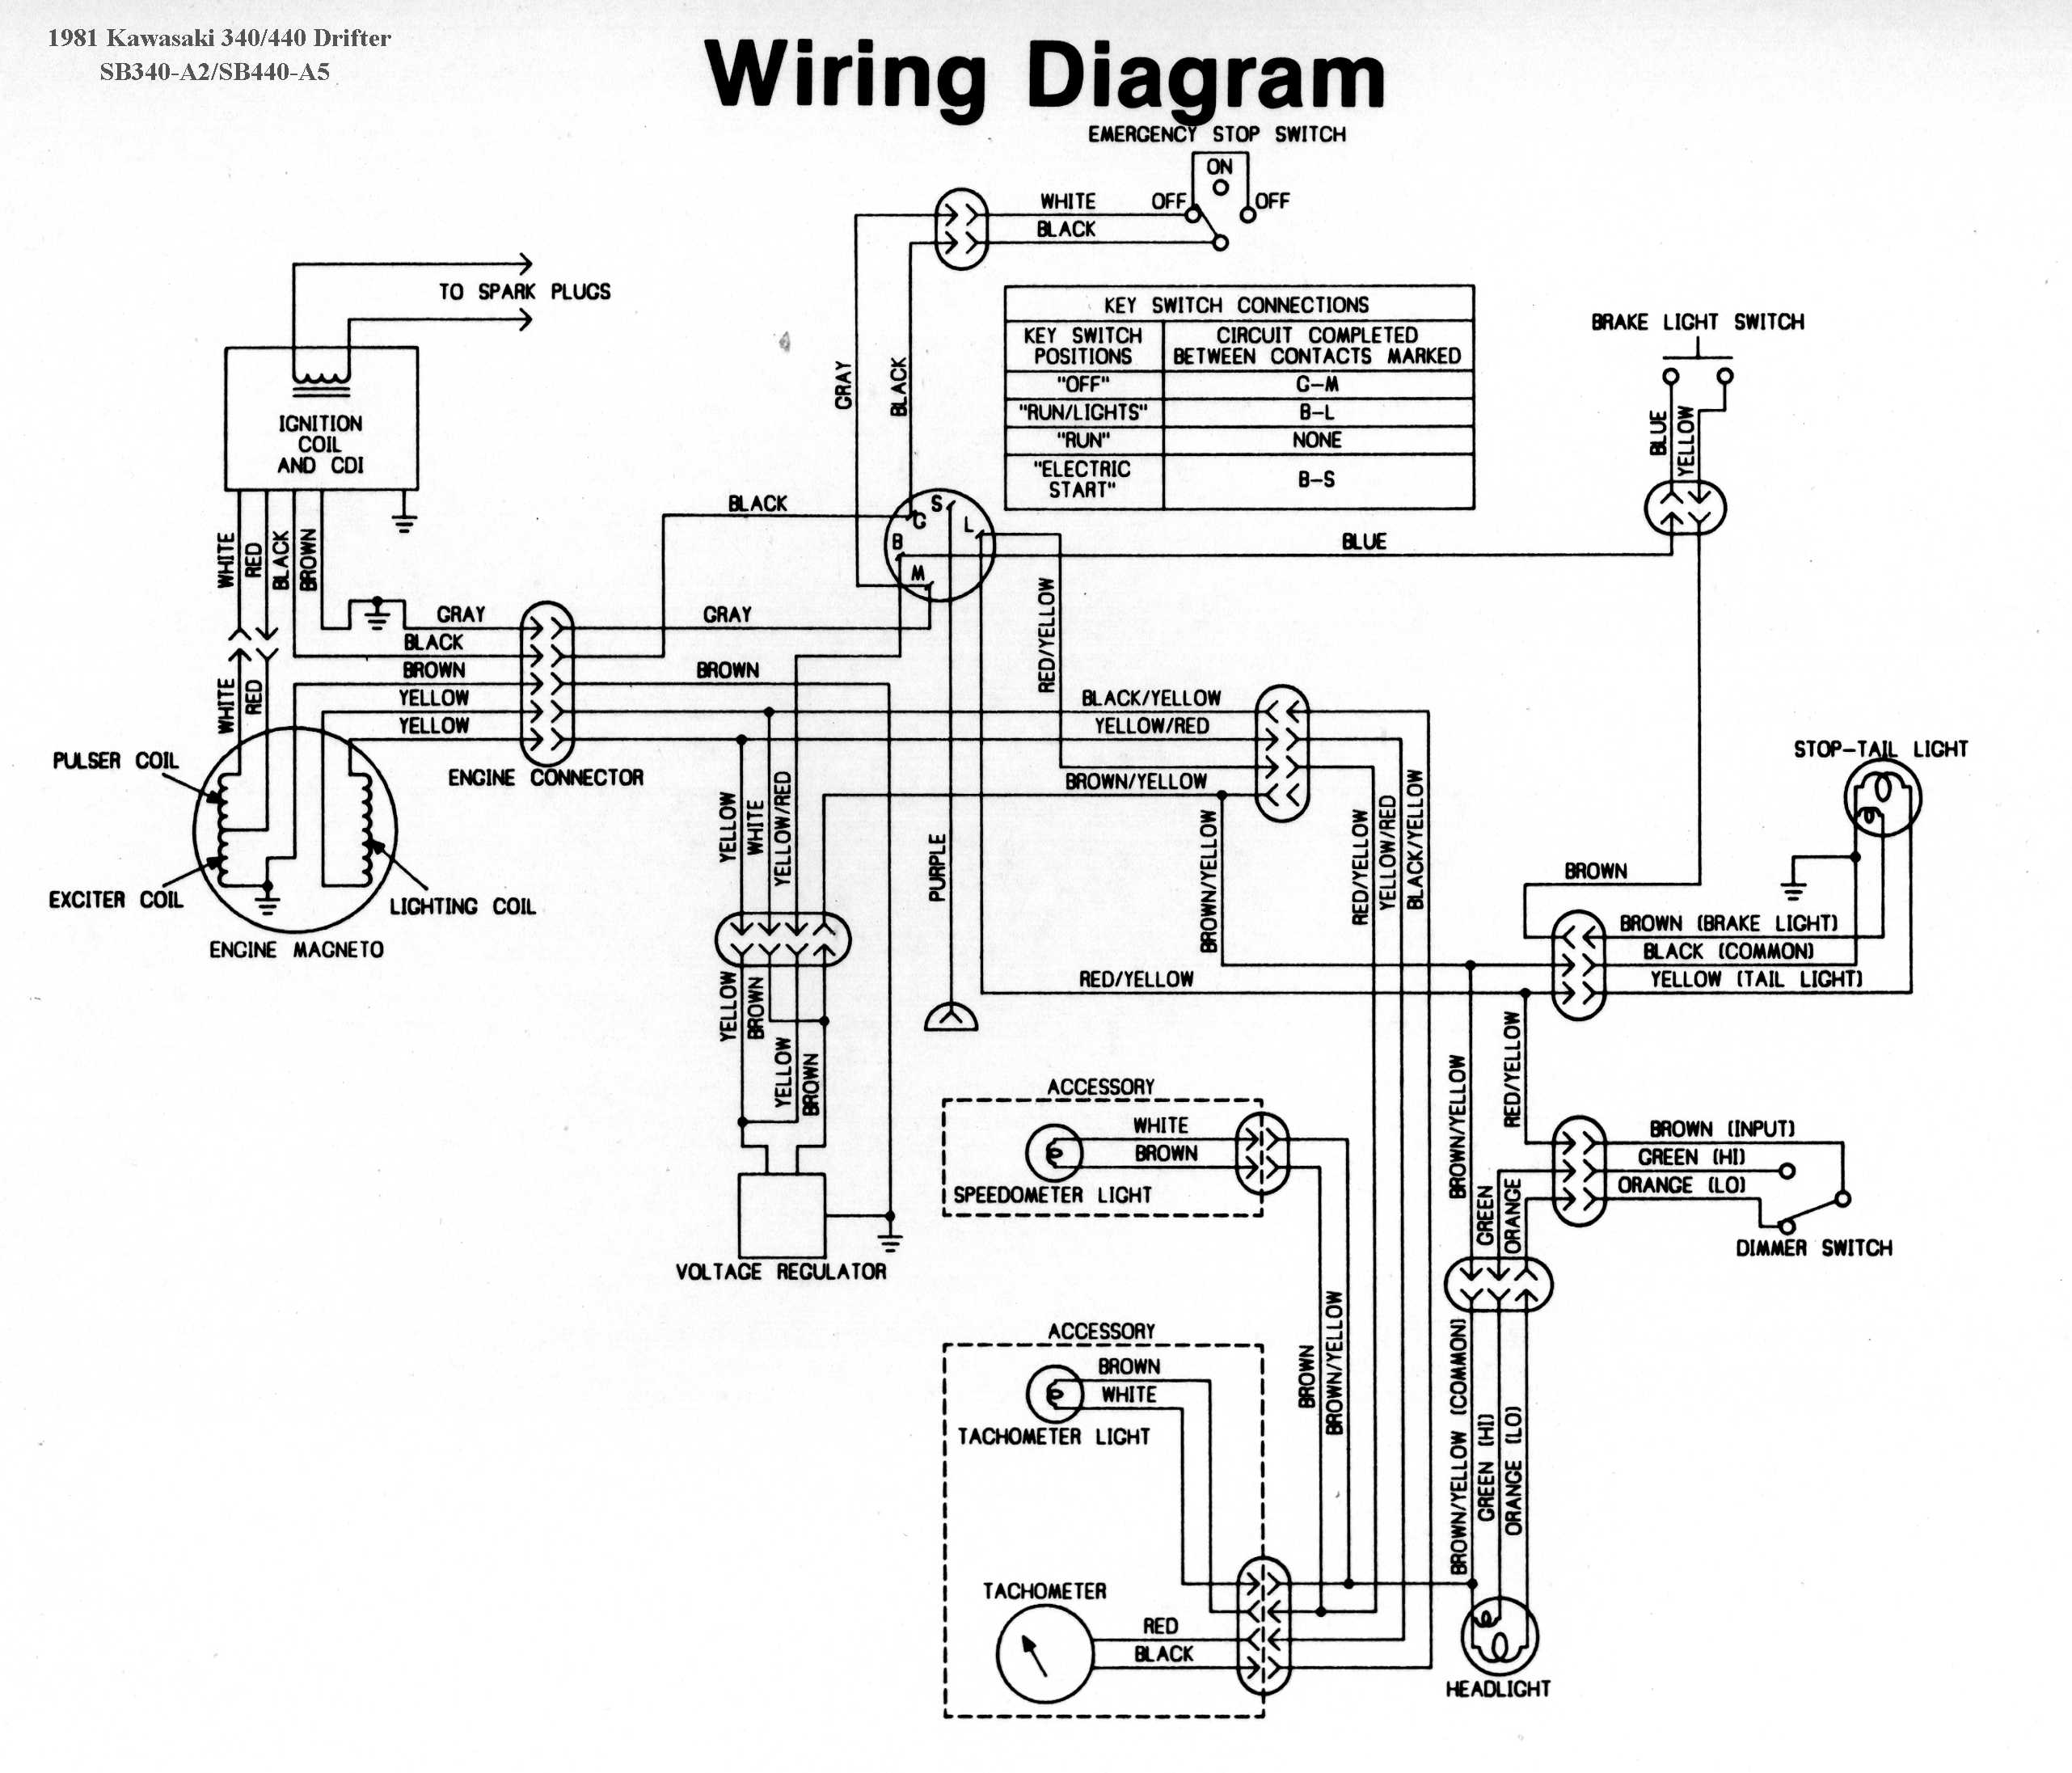 1980 kawasaki ltd 440 wiring diagram